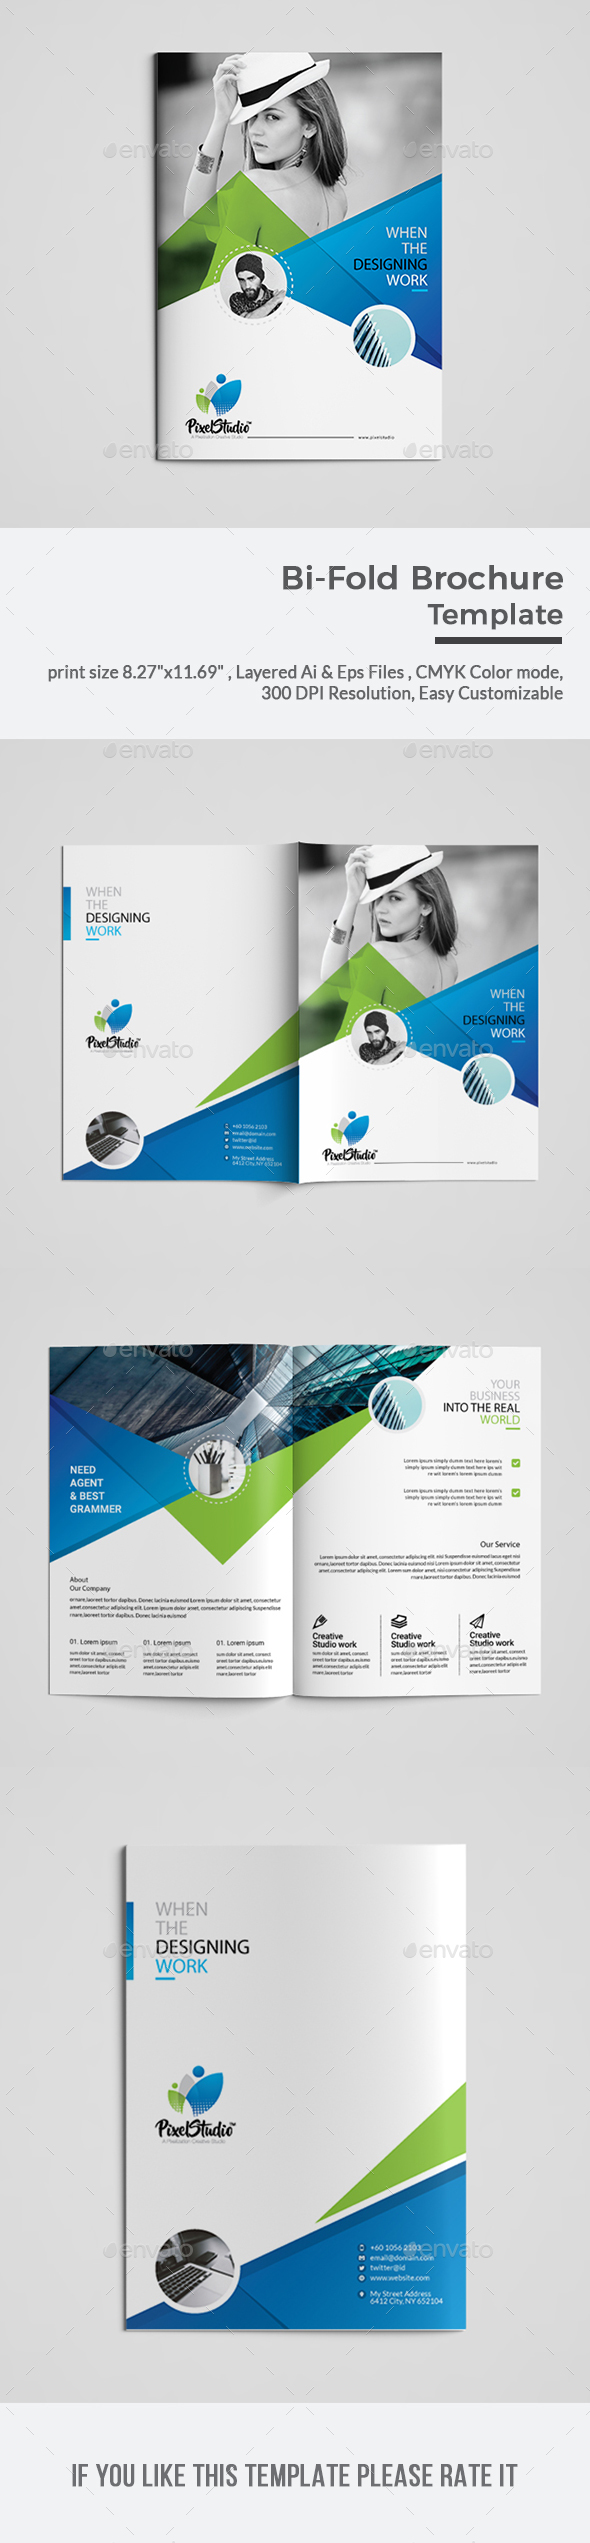 GraphicRiver Bi-Fold Brochure Template 20852208